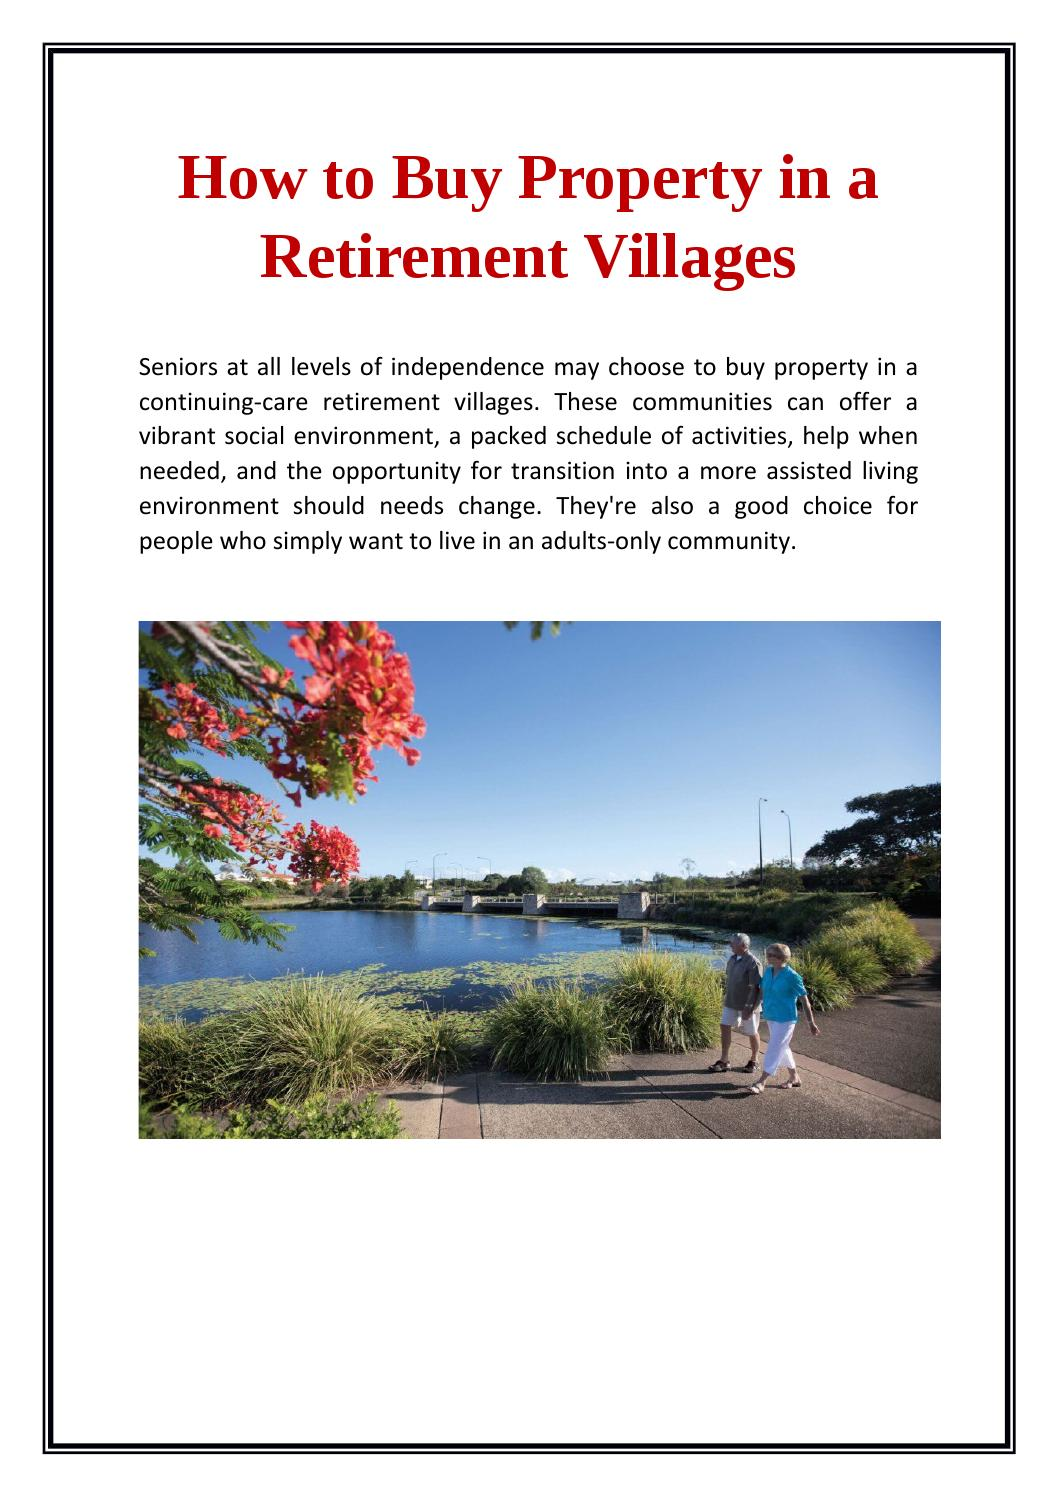 How to Buy Property in a Retirement Community